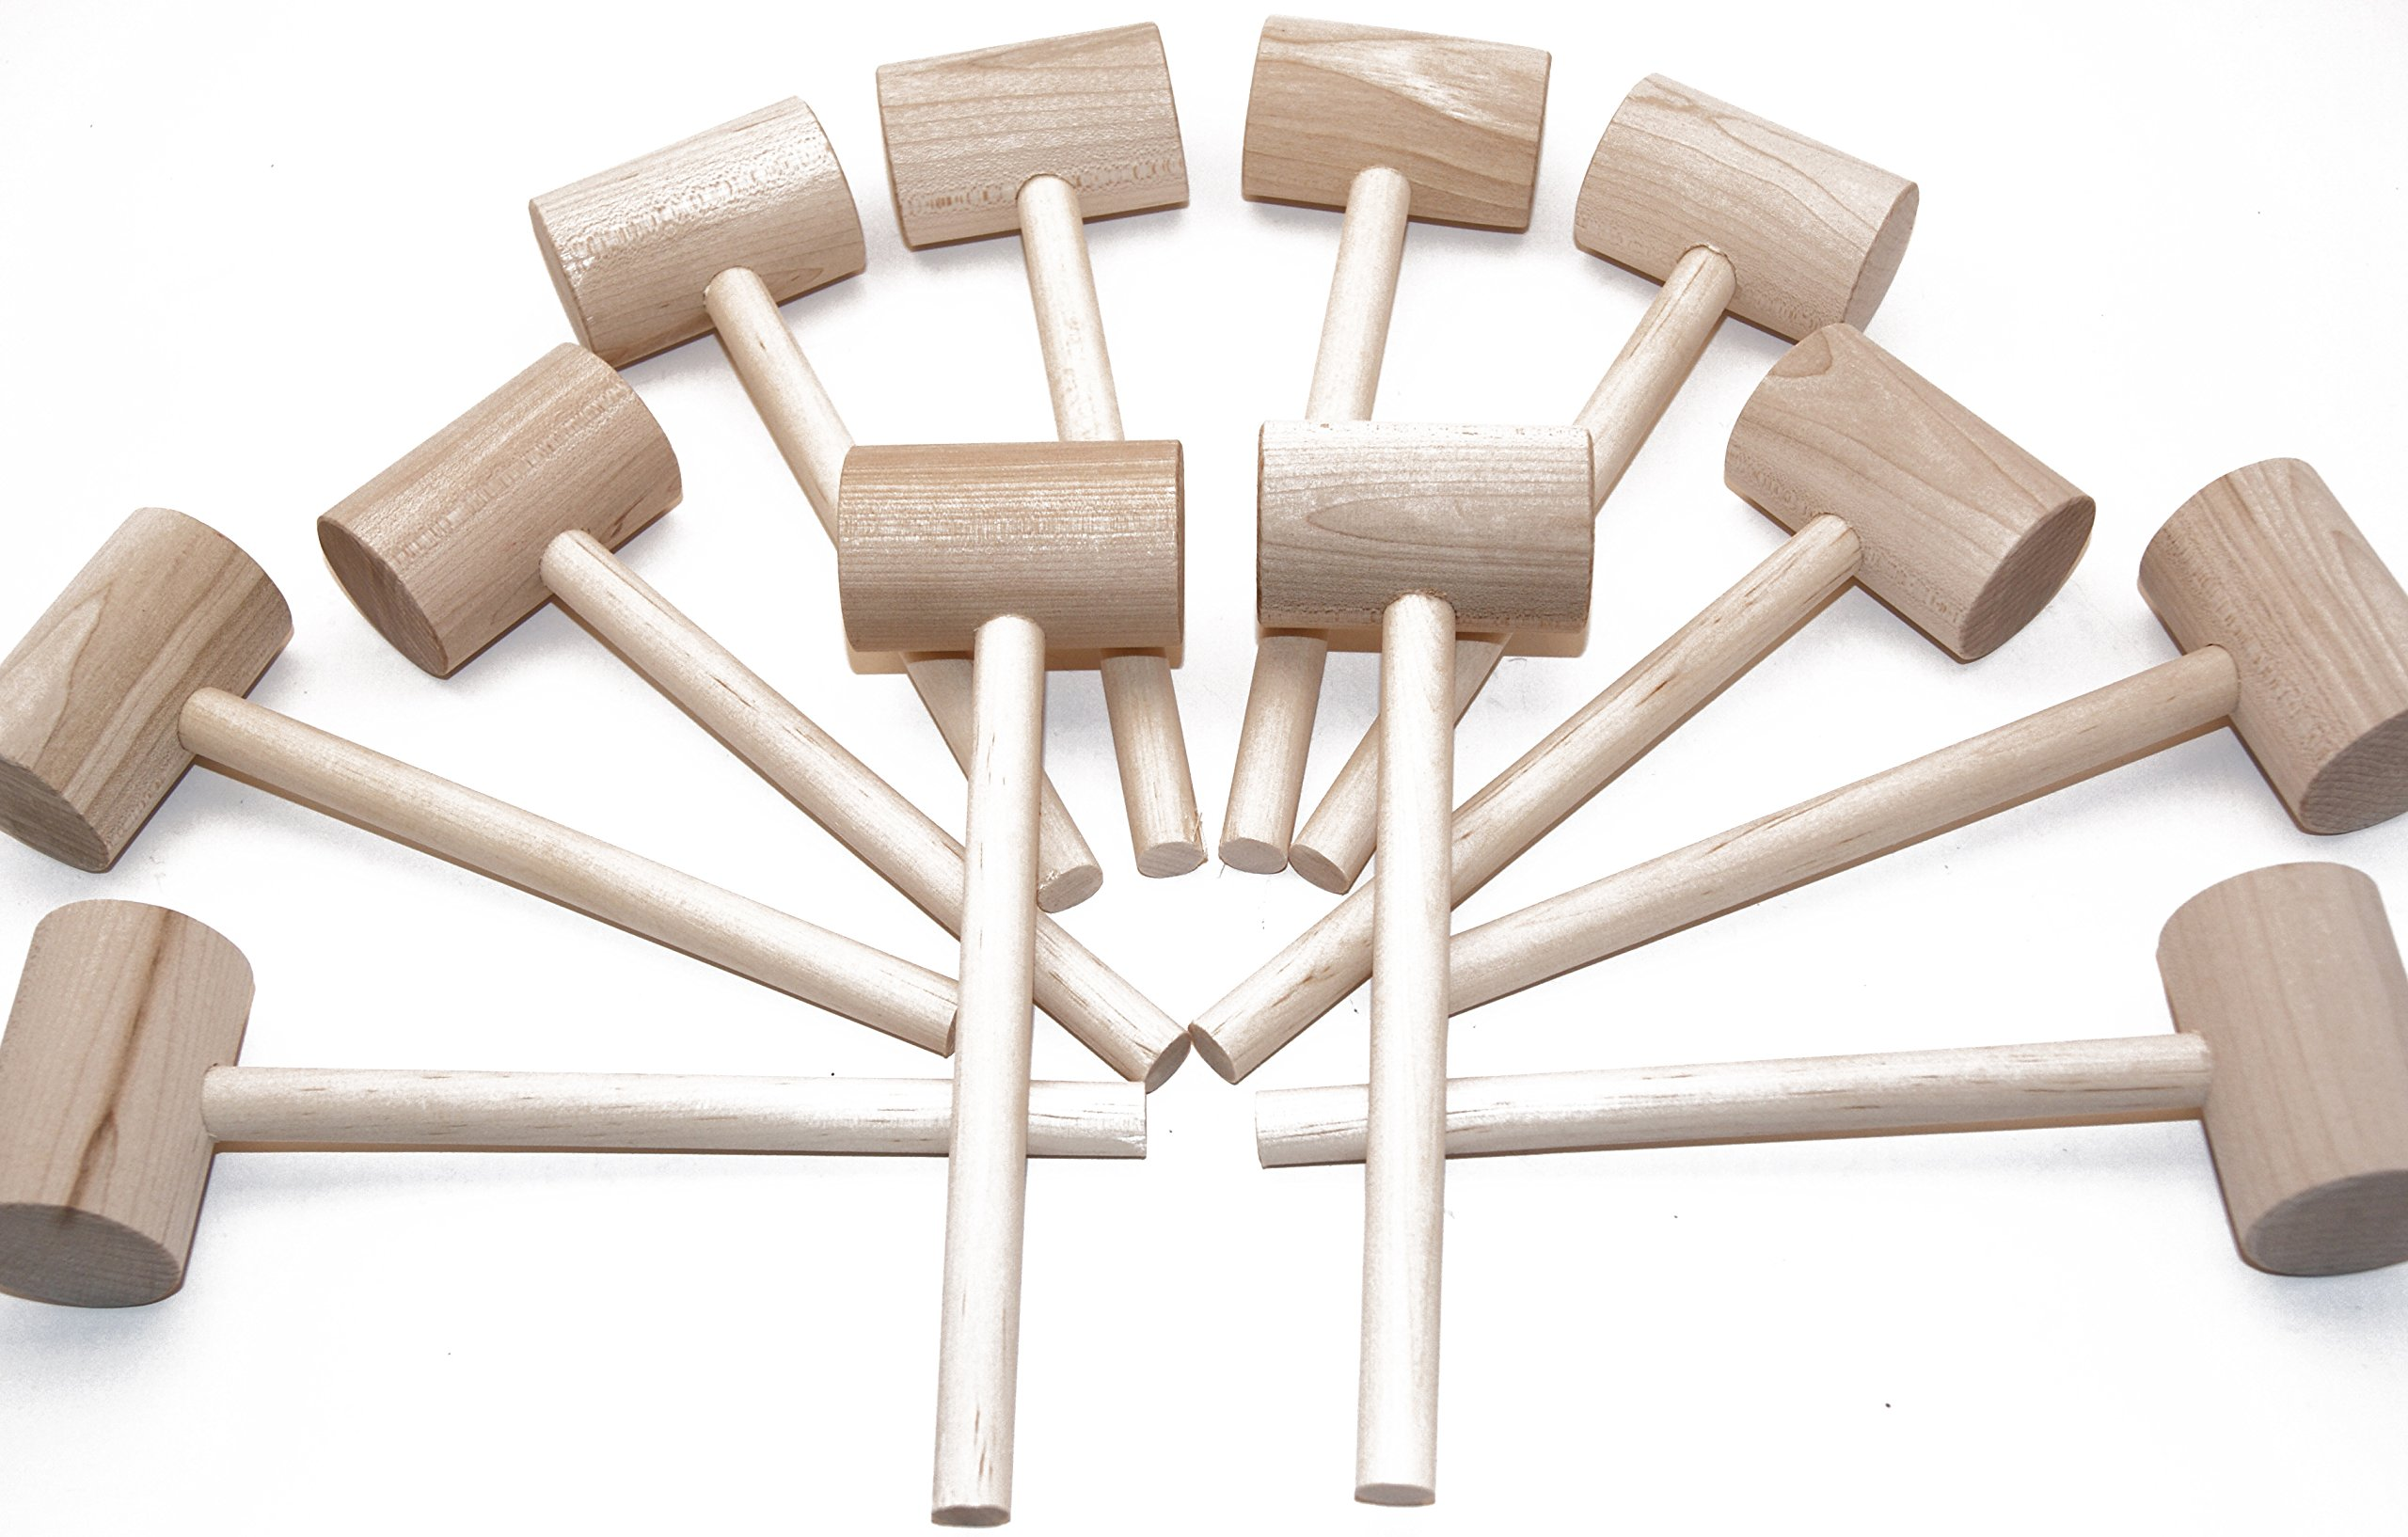 Beall's Bay 12 Pack Crab or Lobster Mallets with Off-Season Storage Box by Beall's Bay